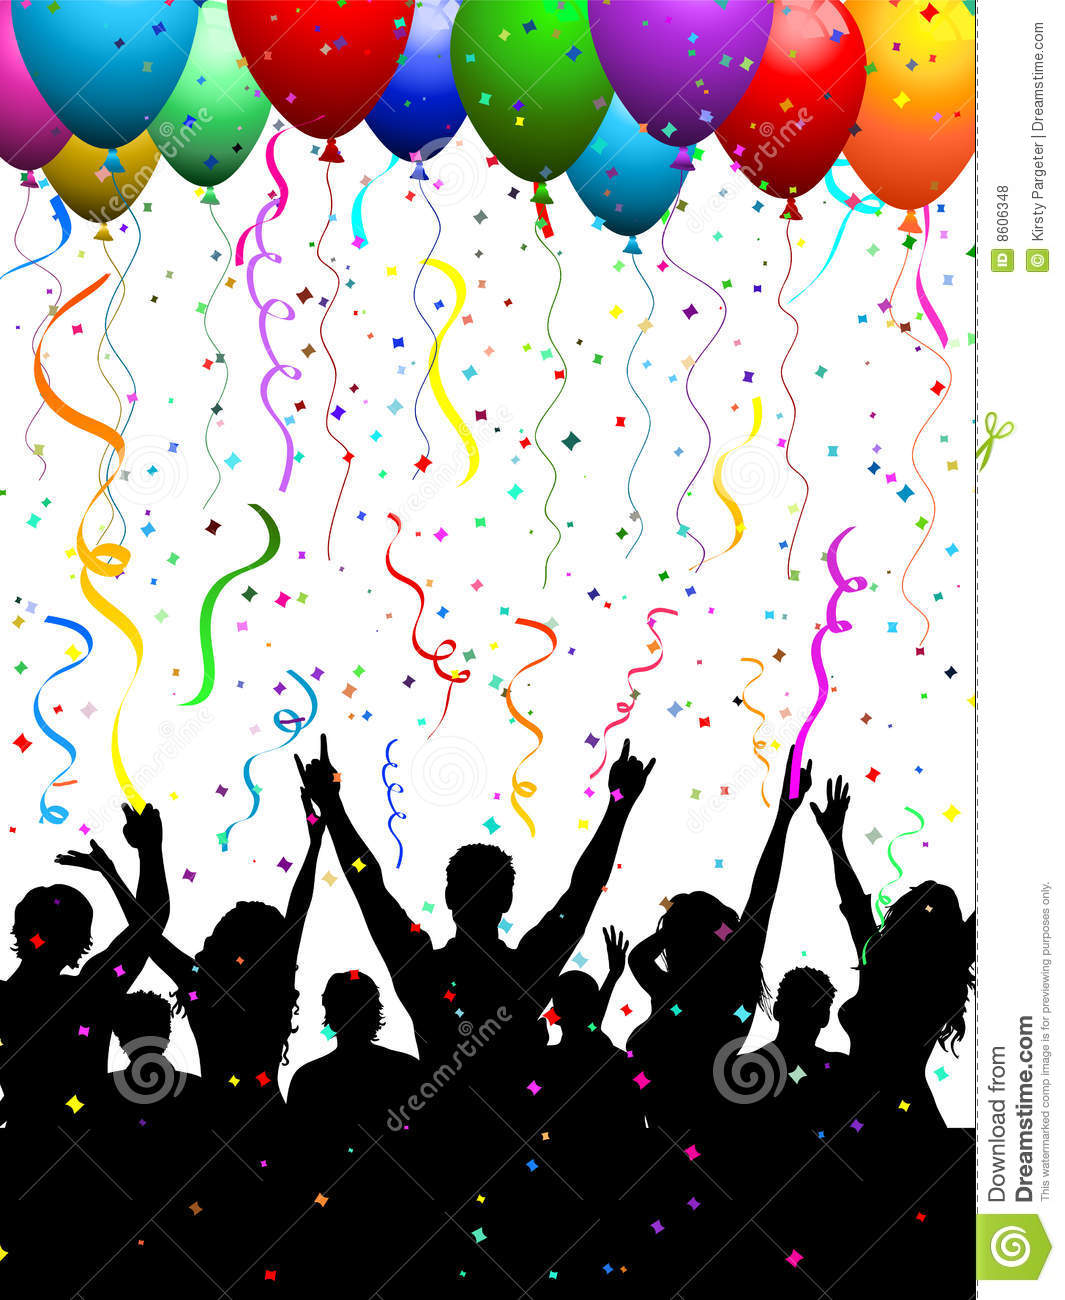 party-crowd-balloons-8606348.jpg